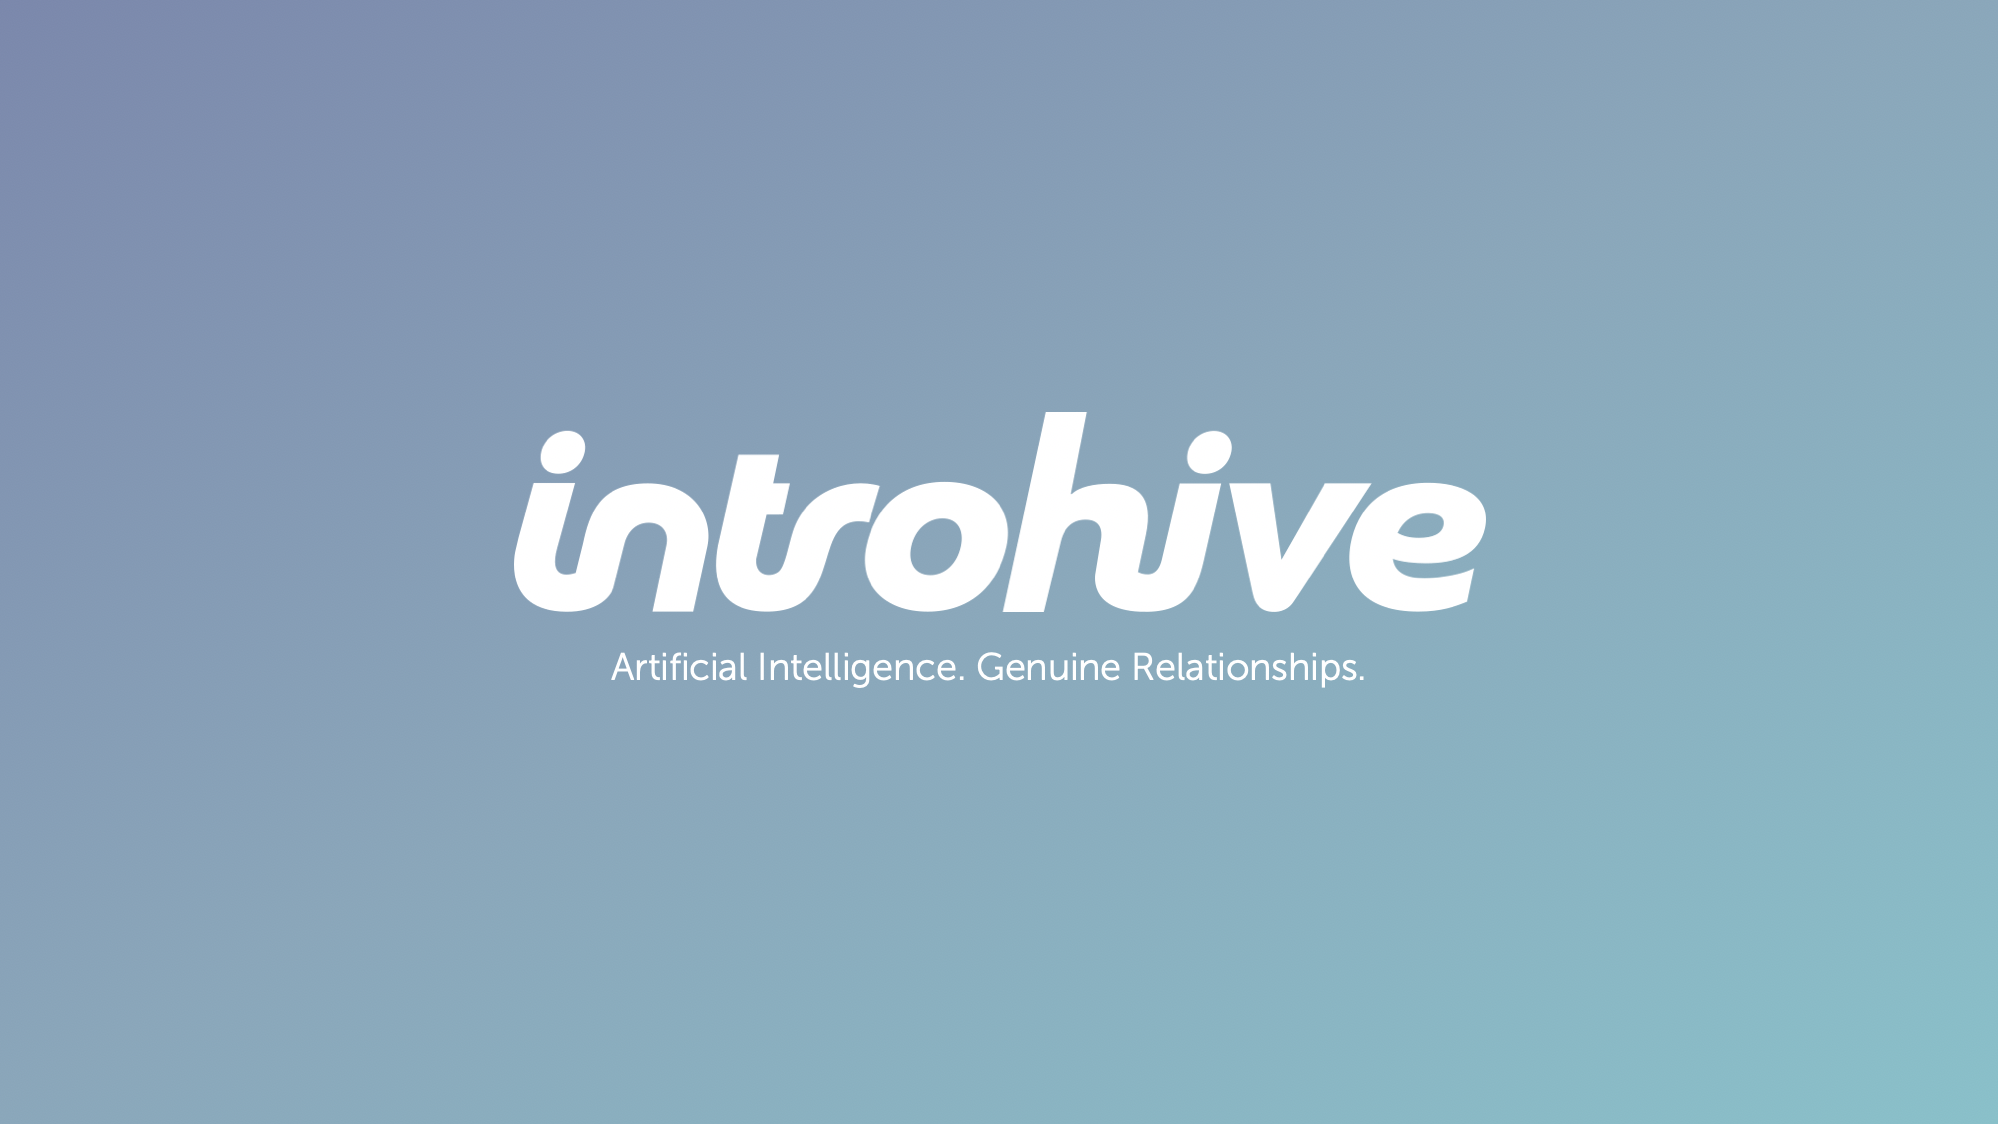 Artificial Intelligence. Genuine Relationships.